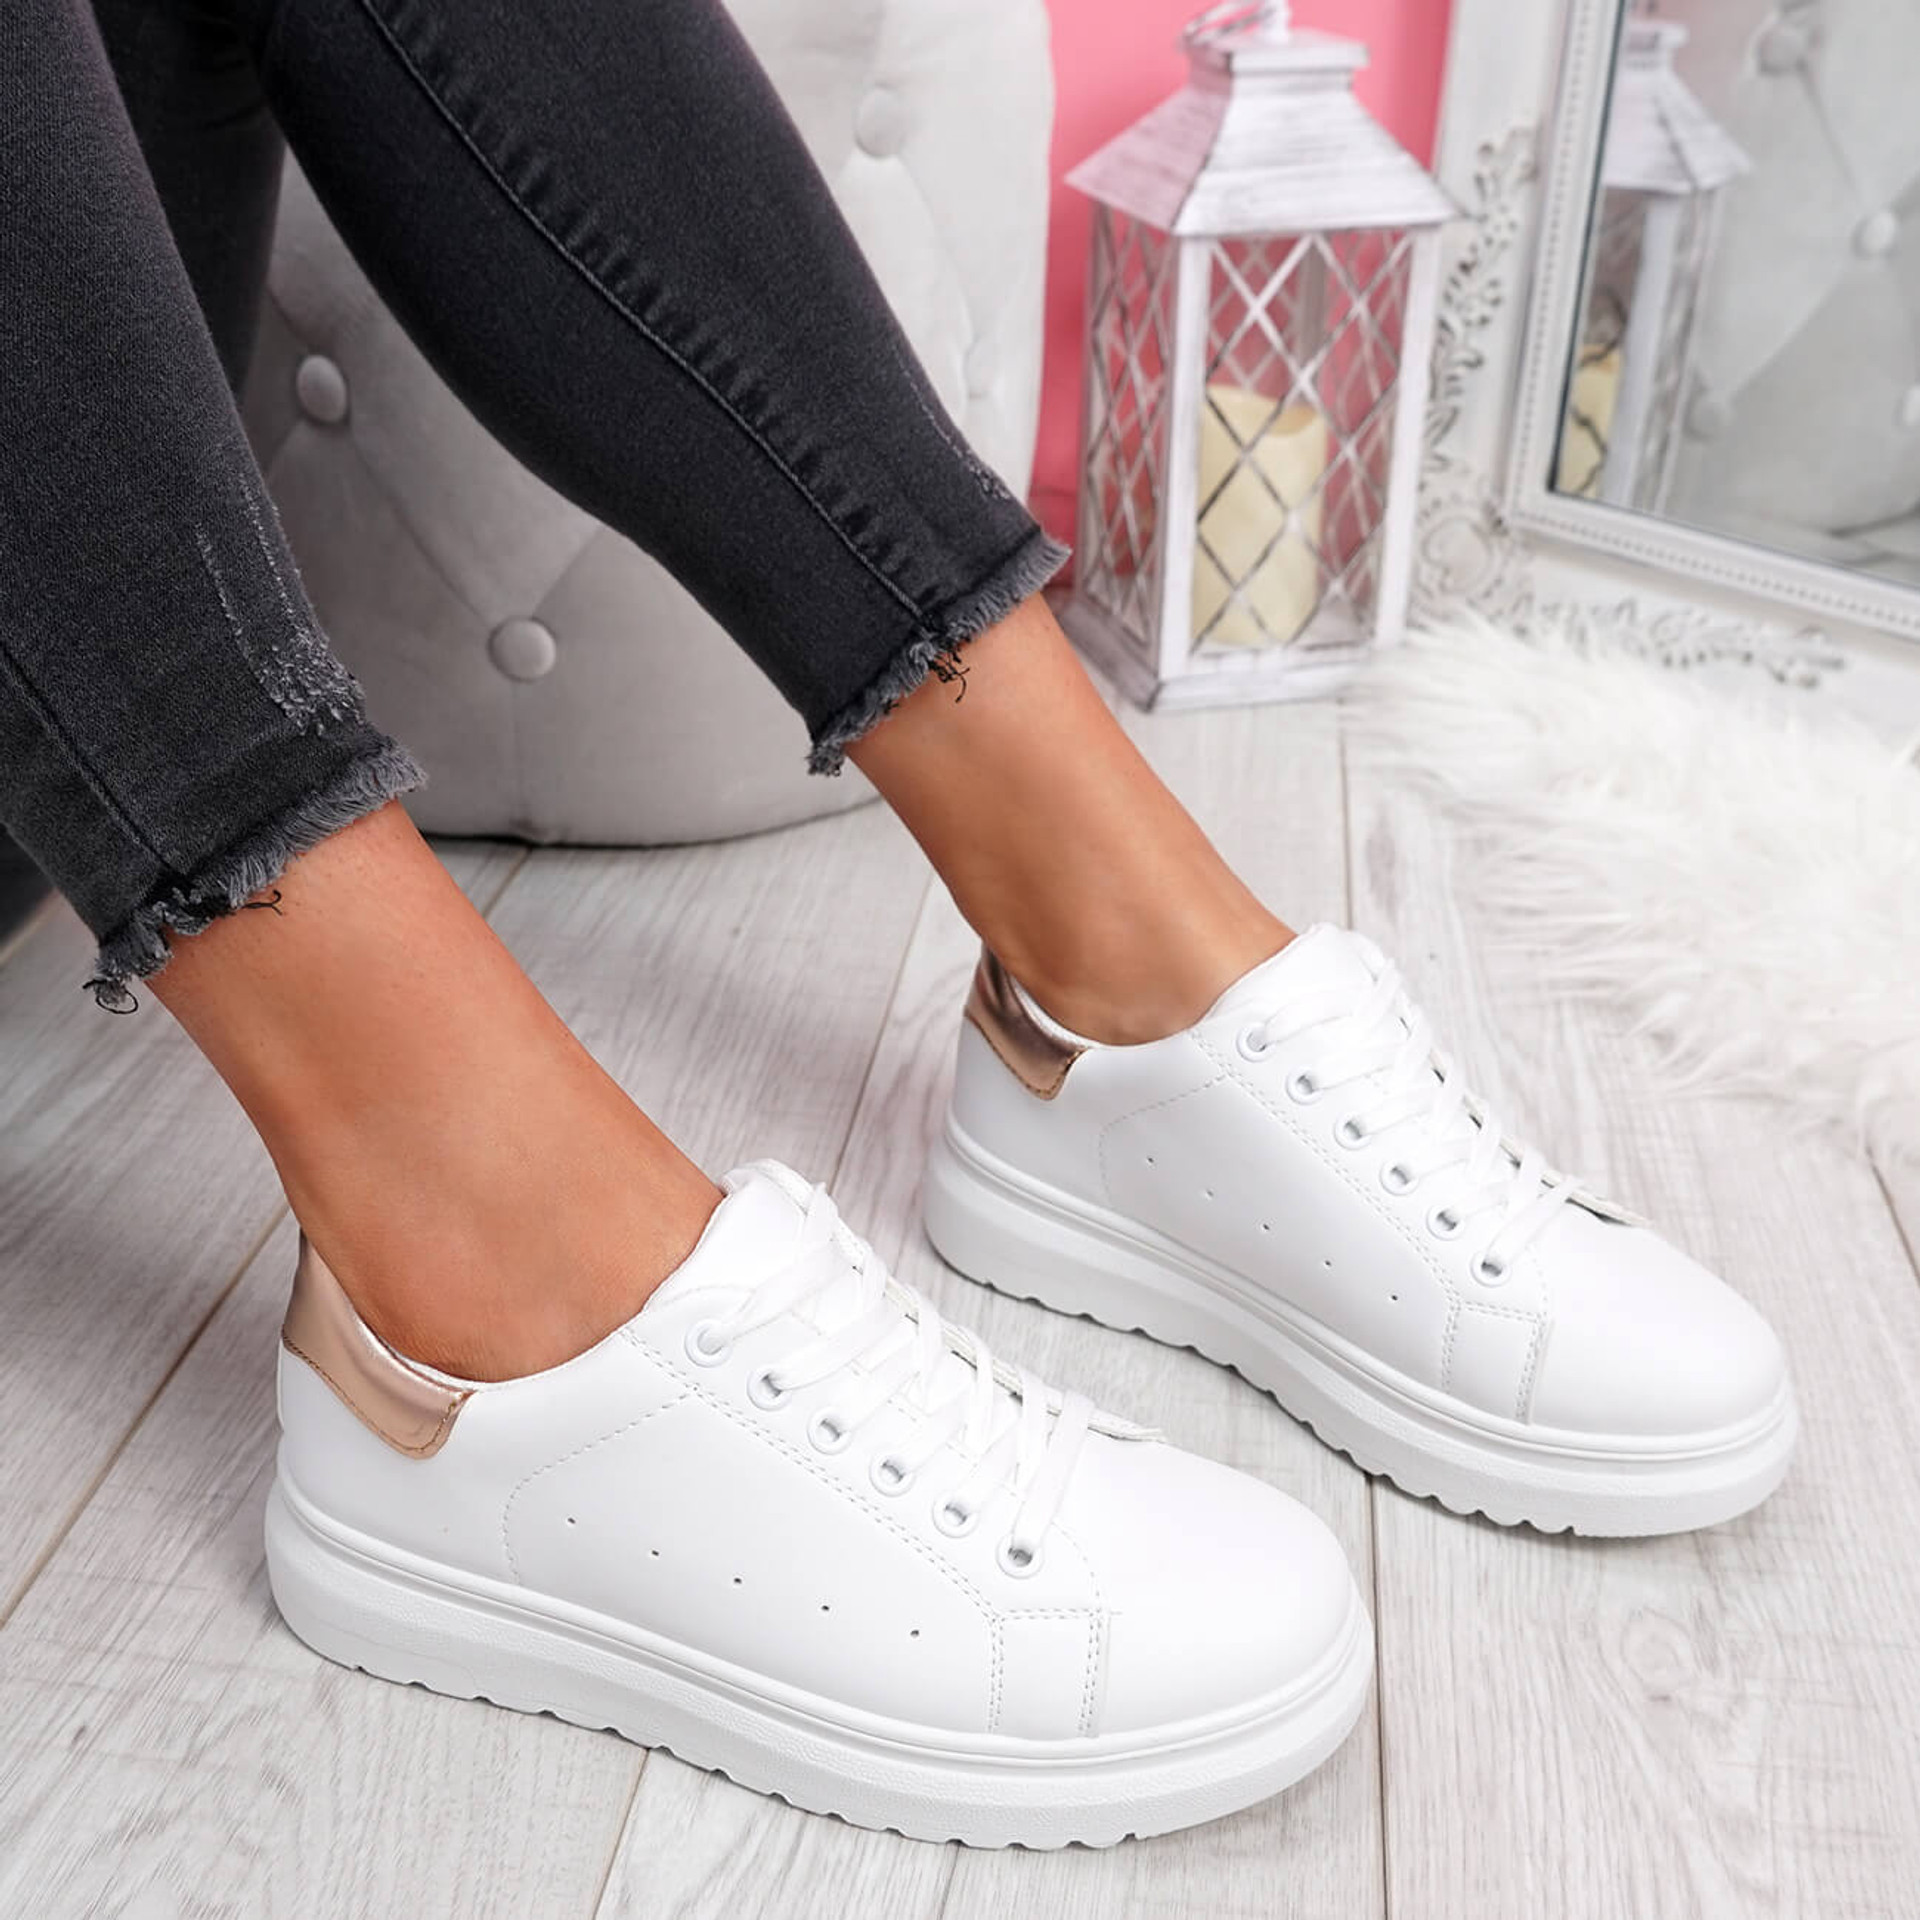 womens ladies lace up platform trainers comfy casual sneakers two tone color women shoes size uk 3 4 5 6 7 8